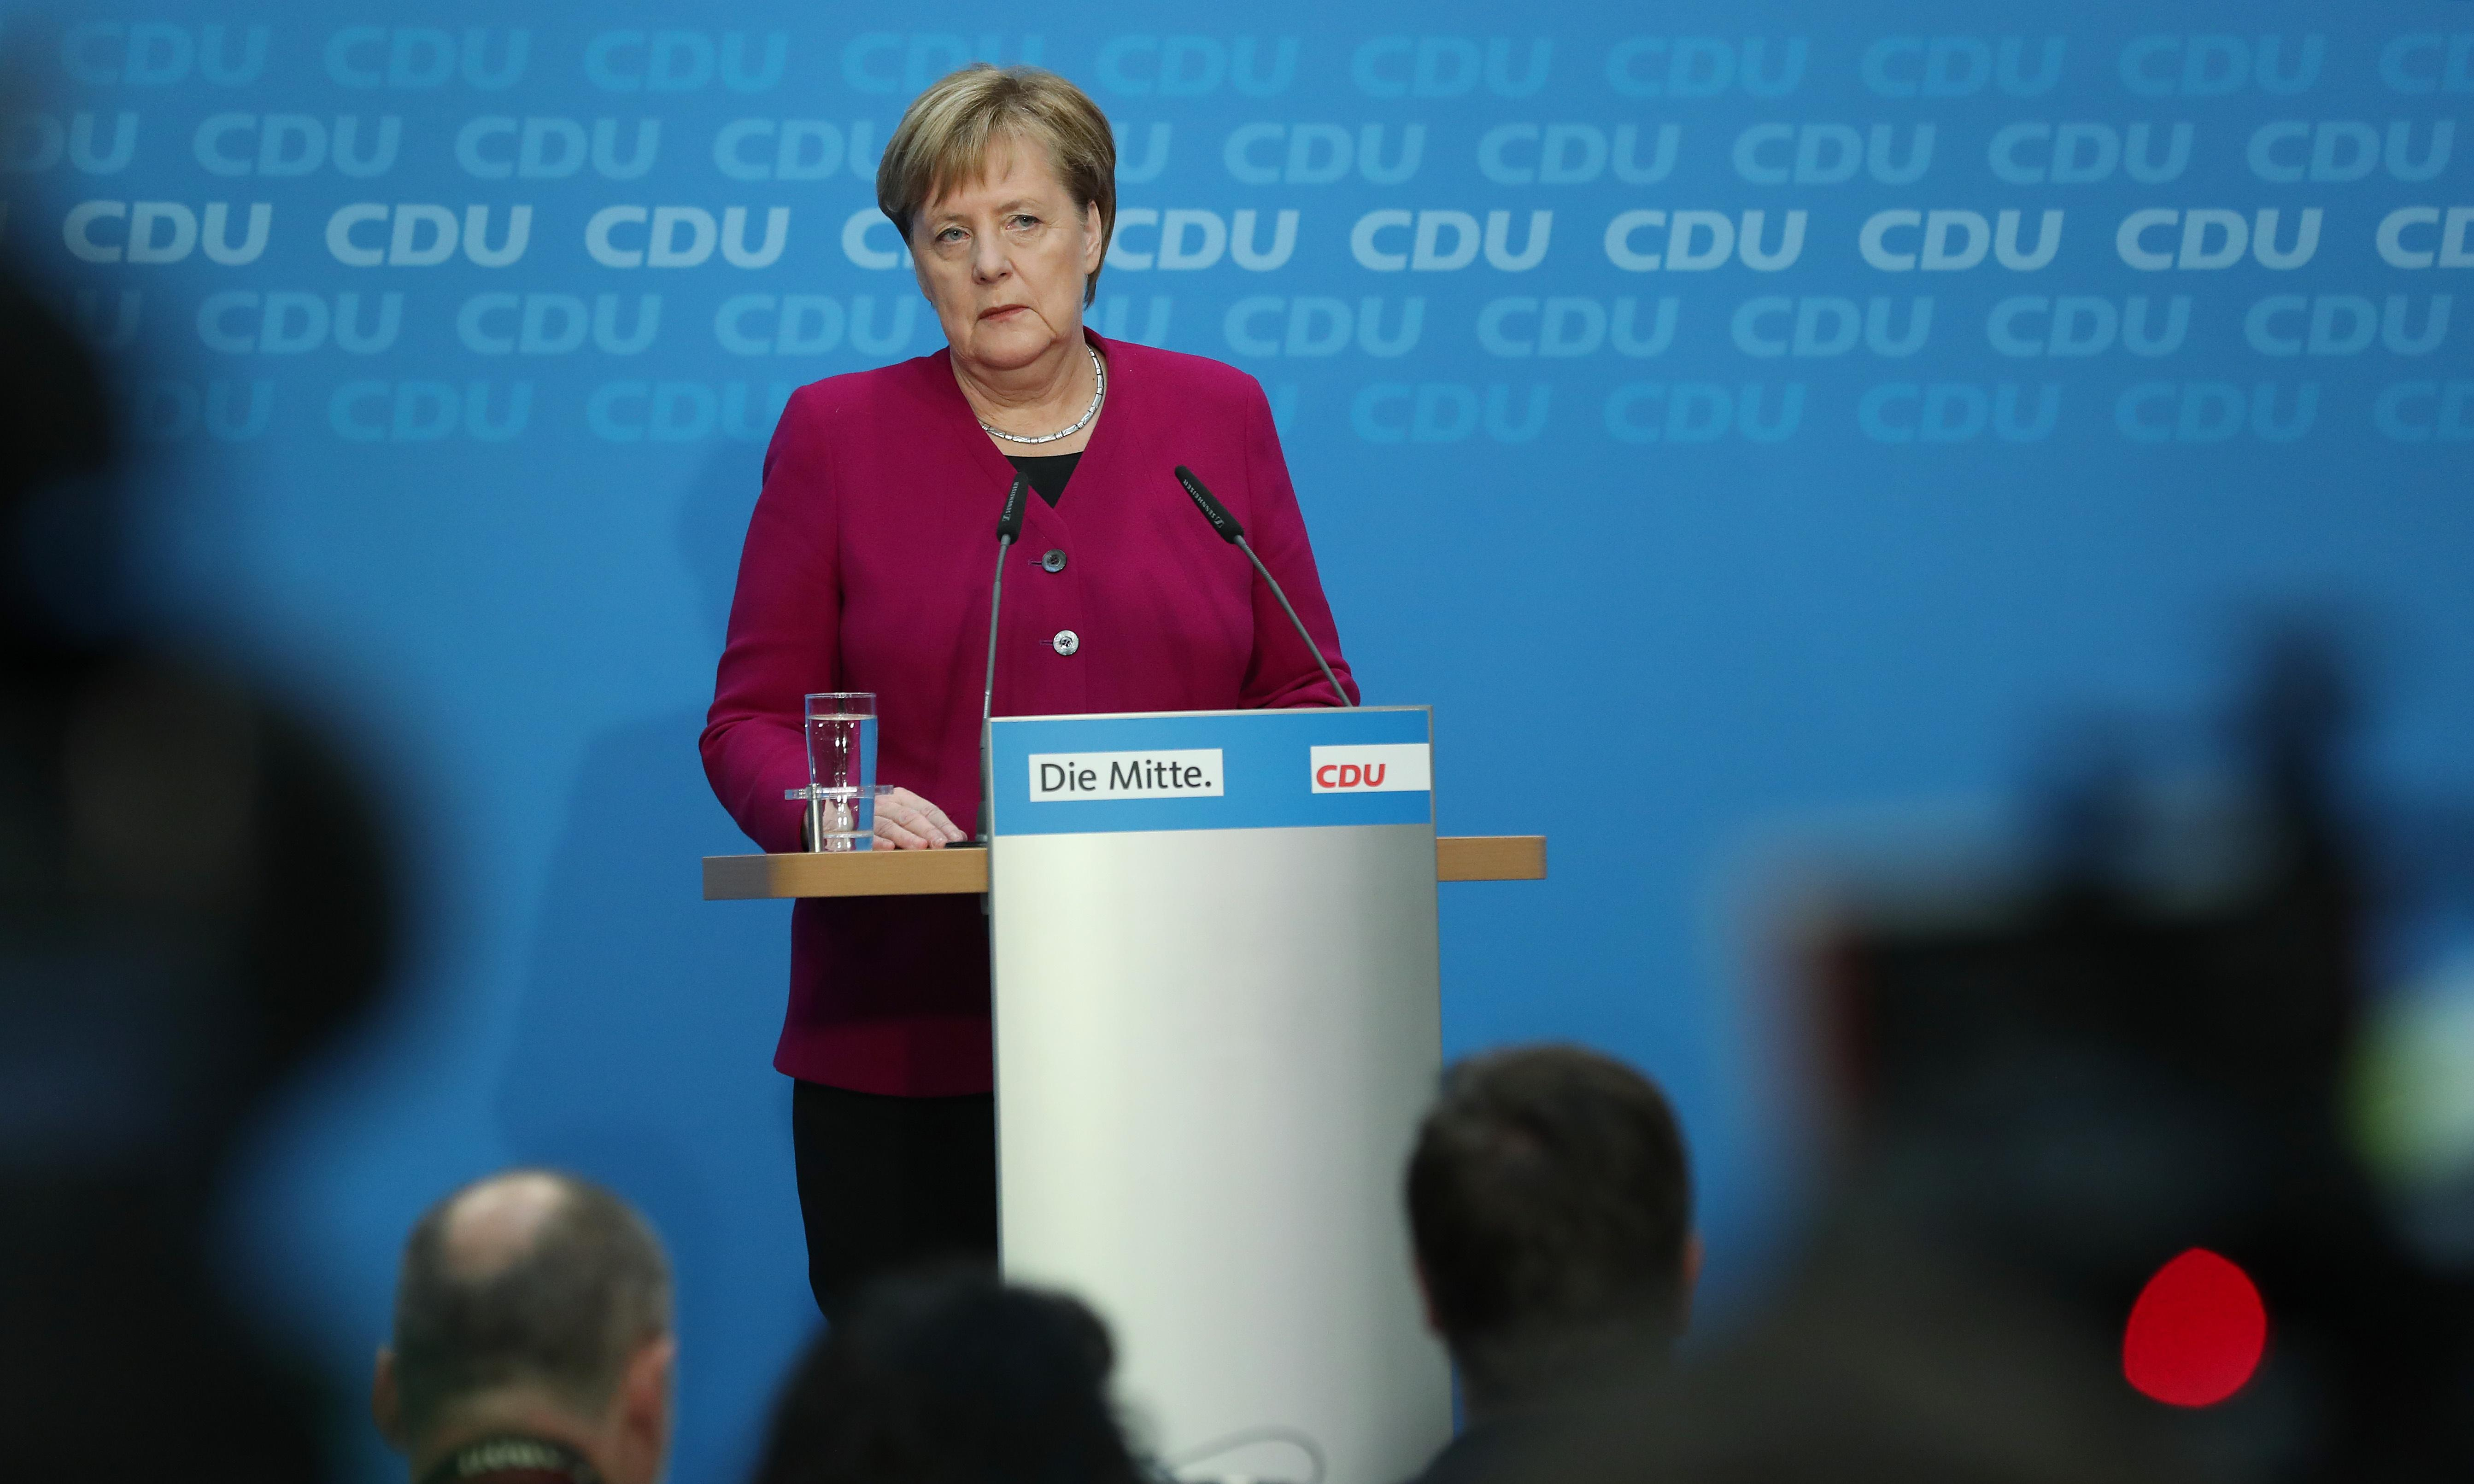 Angela Merkel's successor could be bad news for a post-Brexit Europe